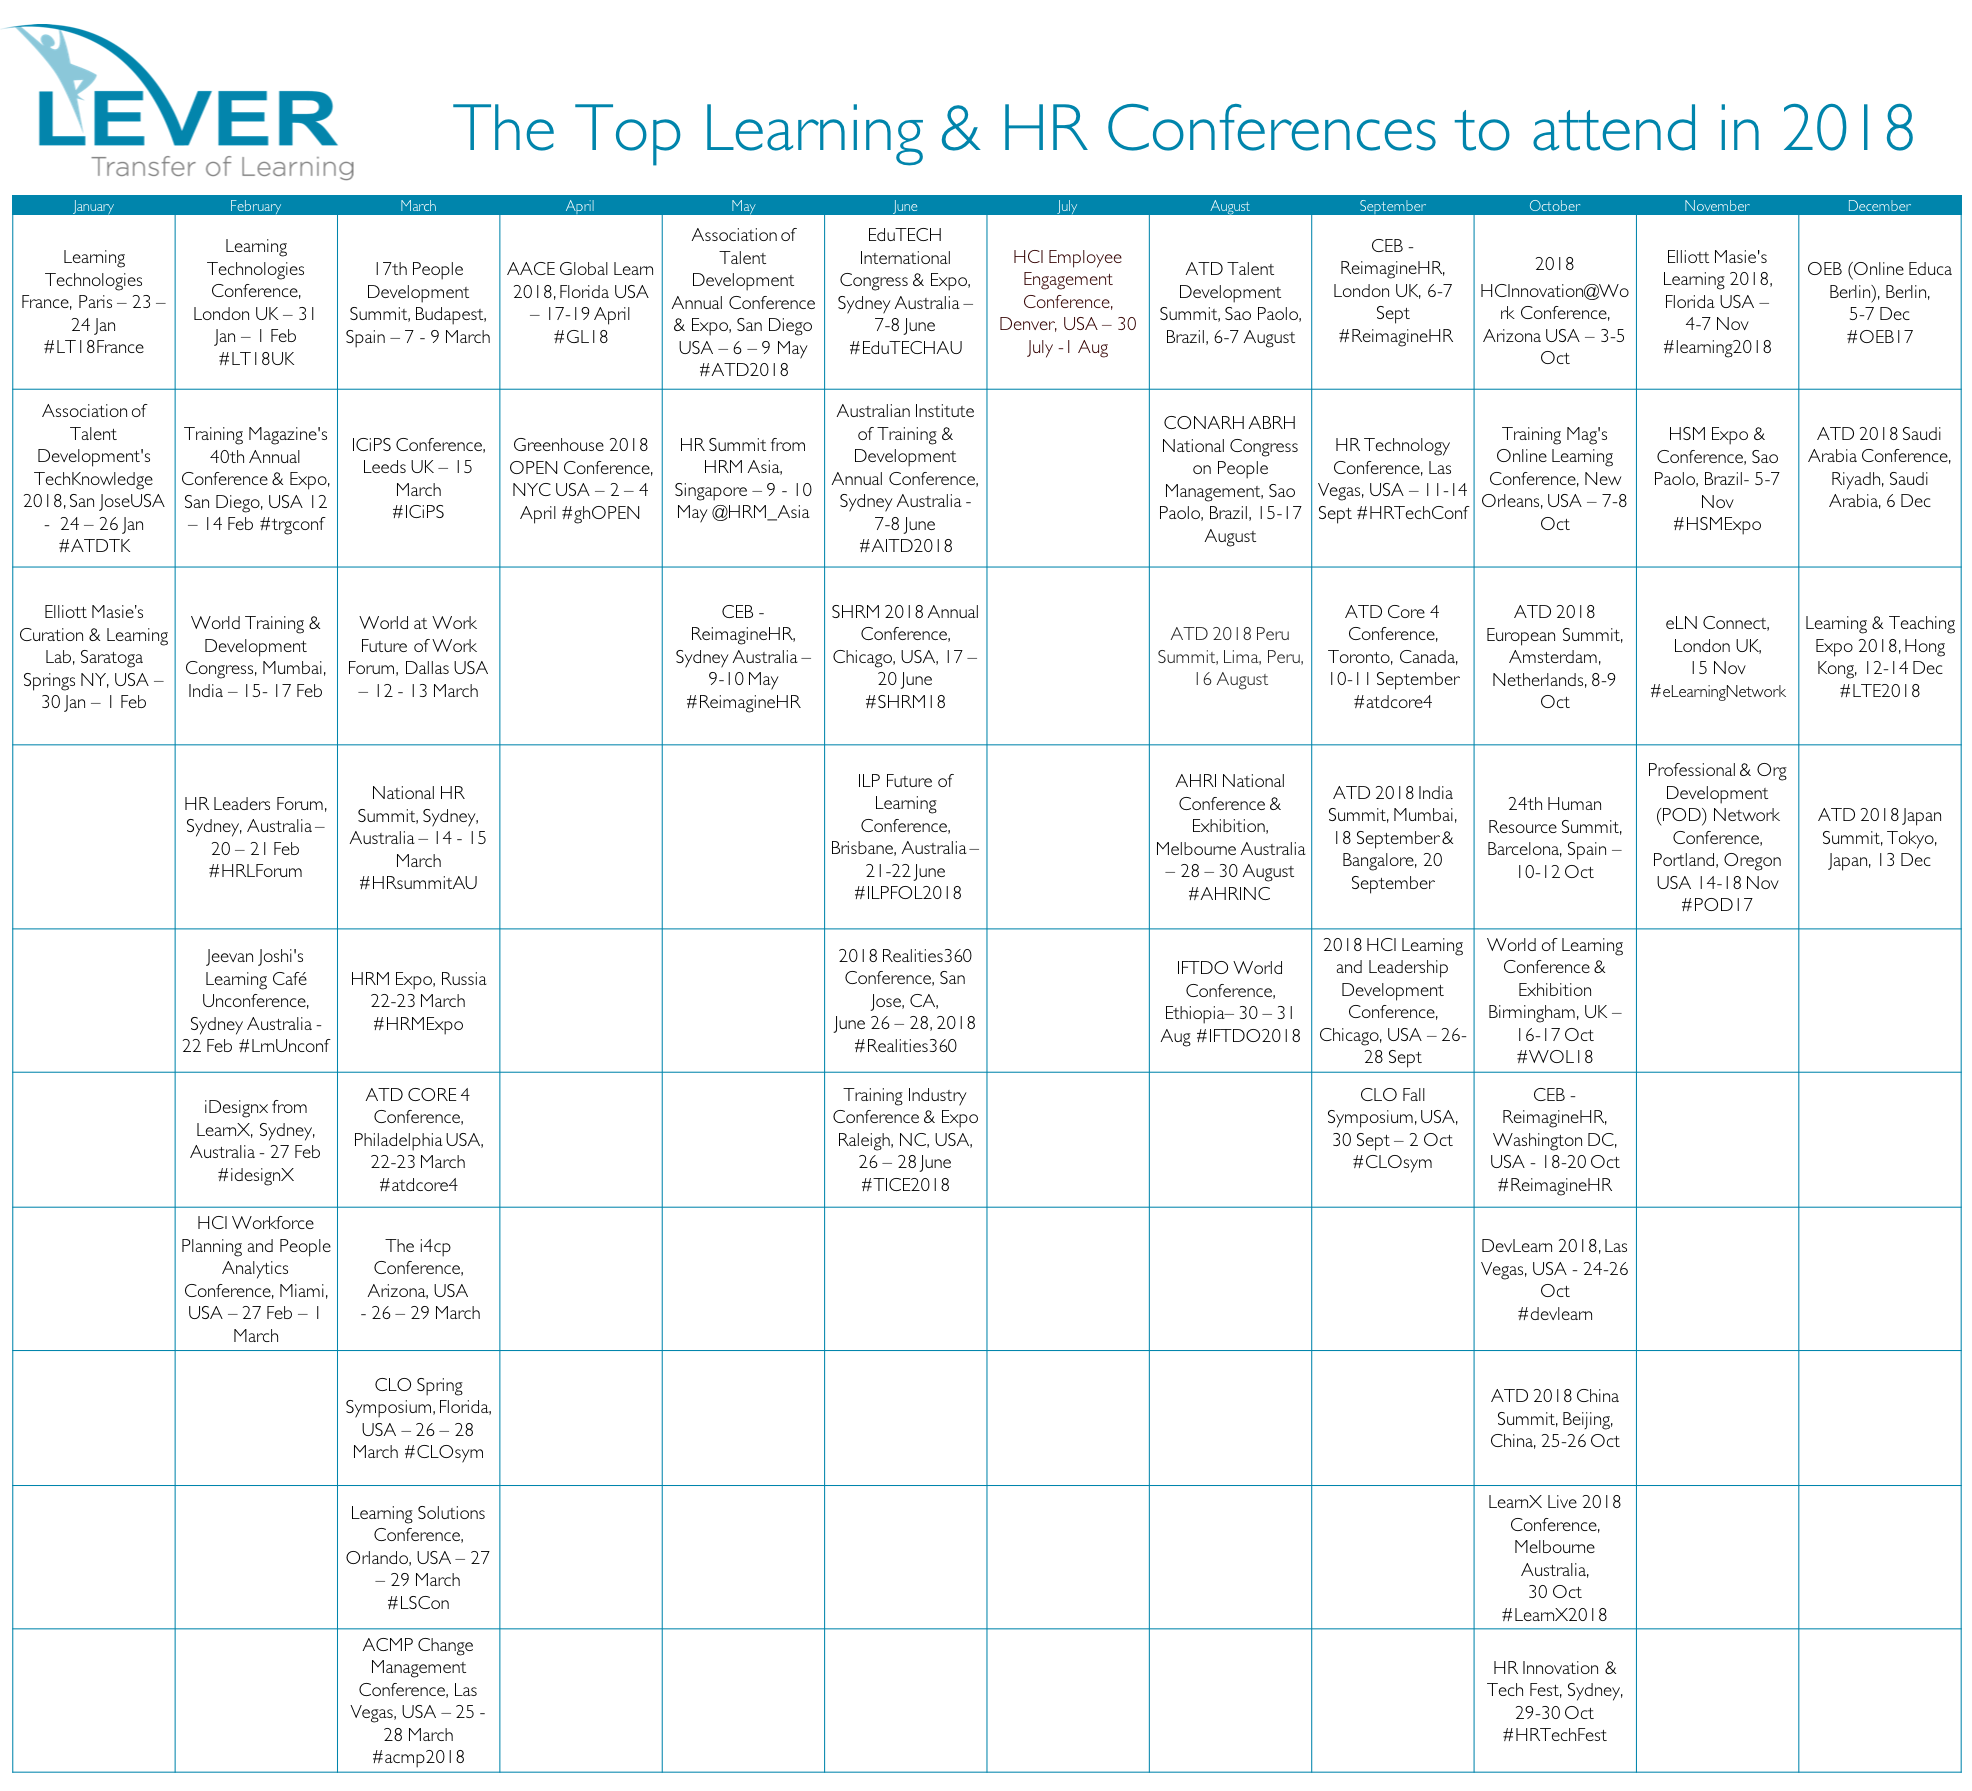 The Top Learning, HR & Talent Development Conferences in 2018